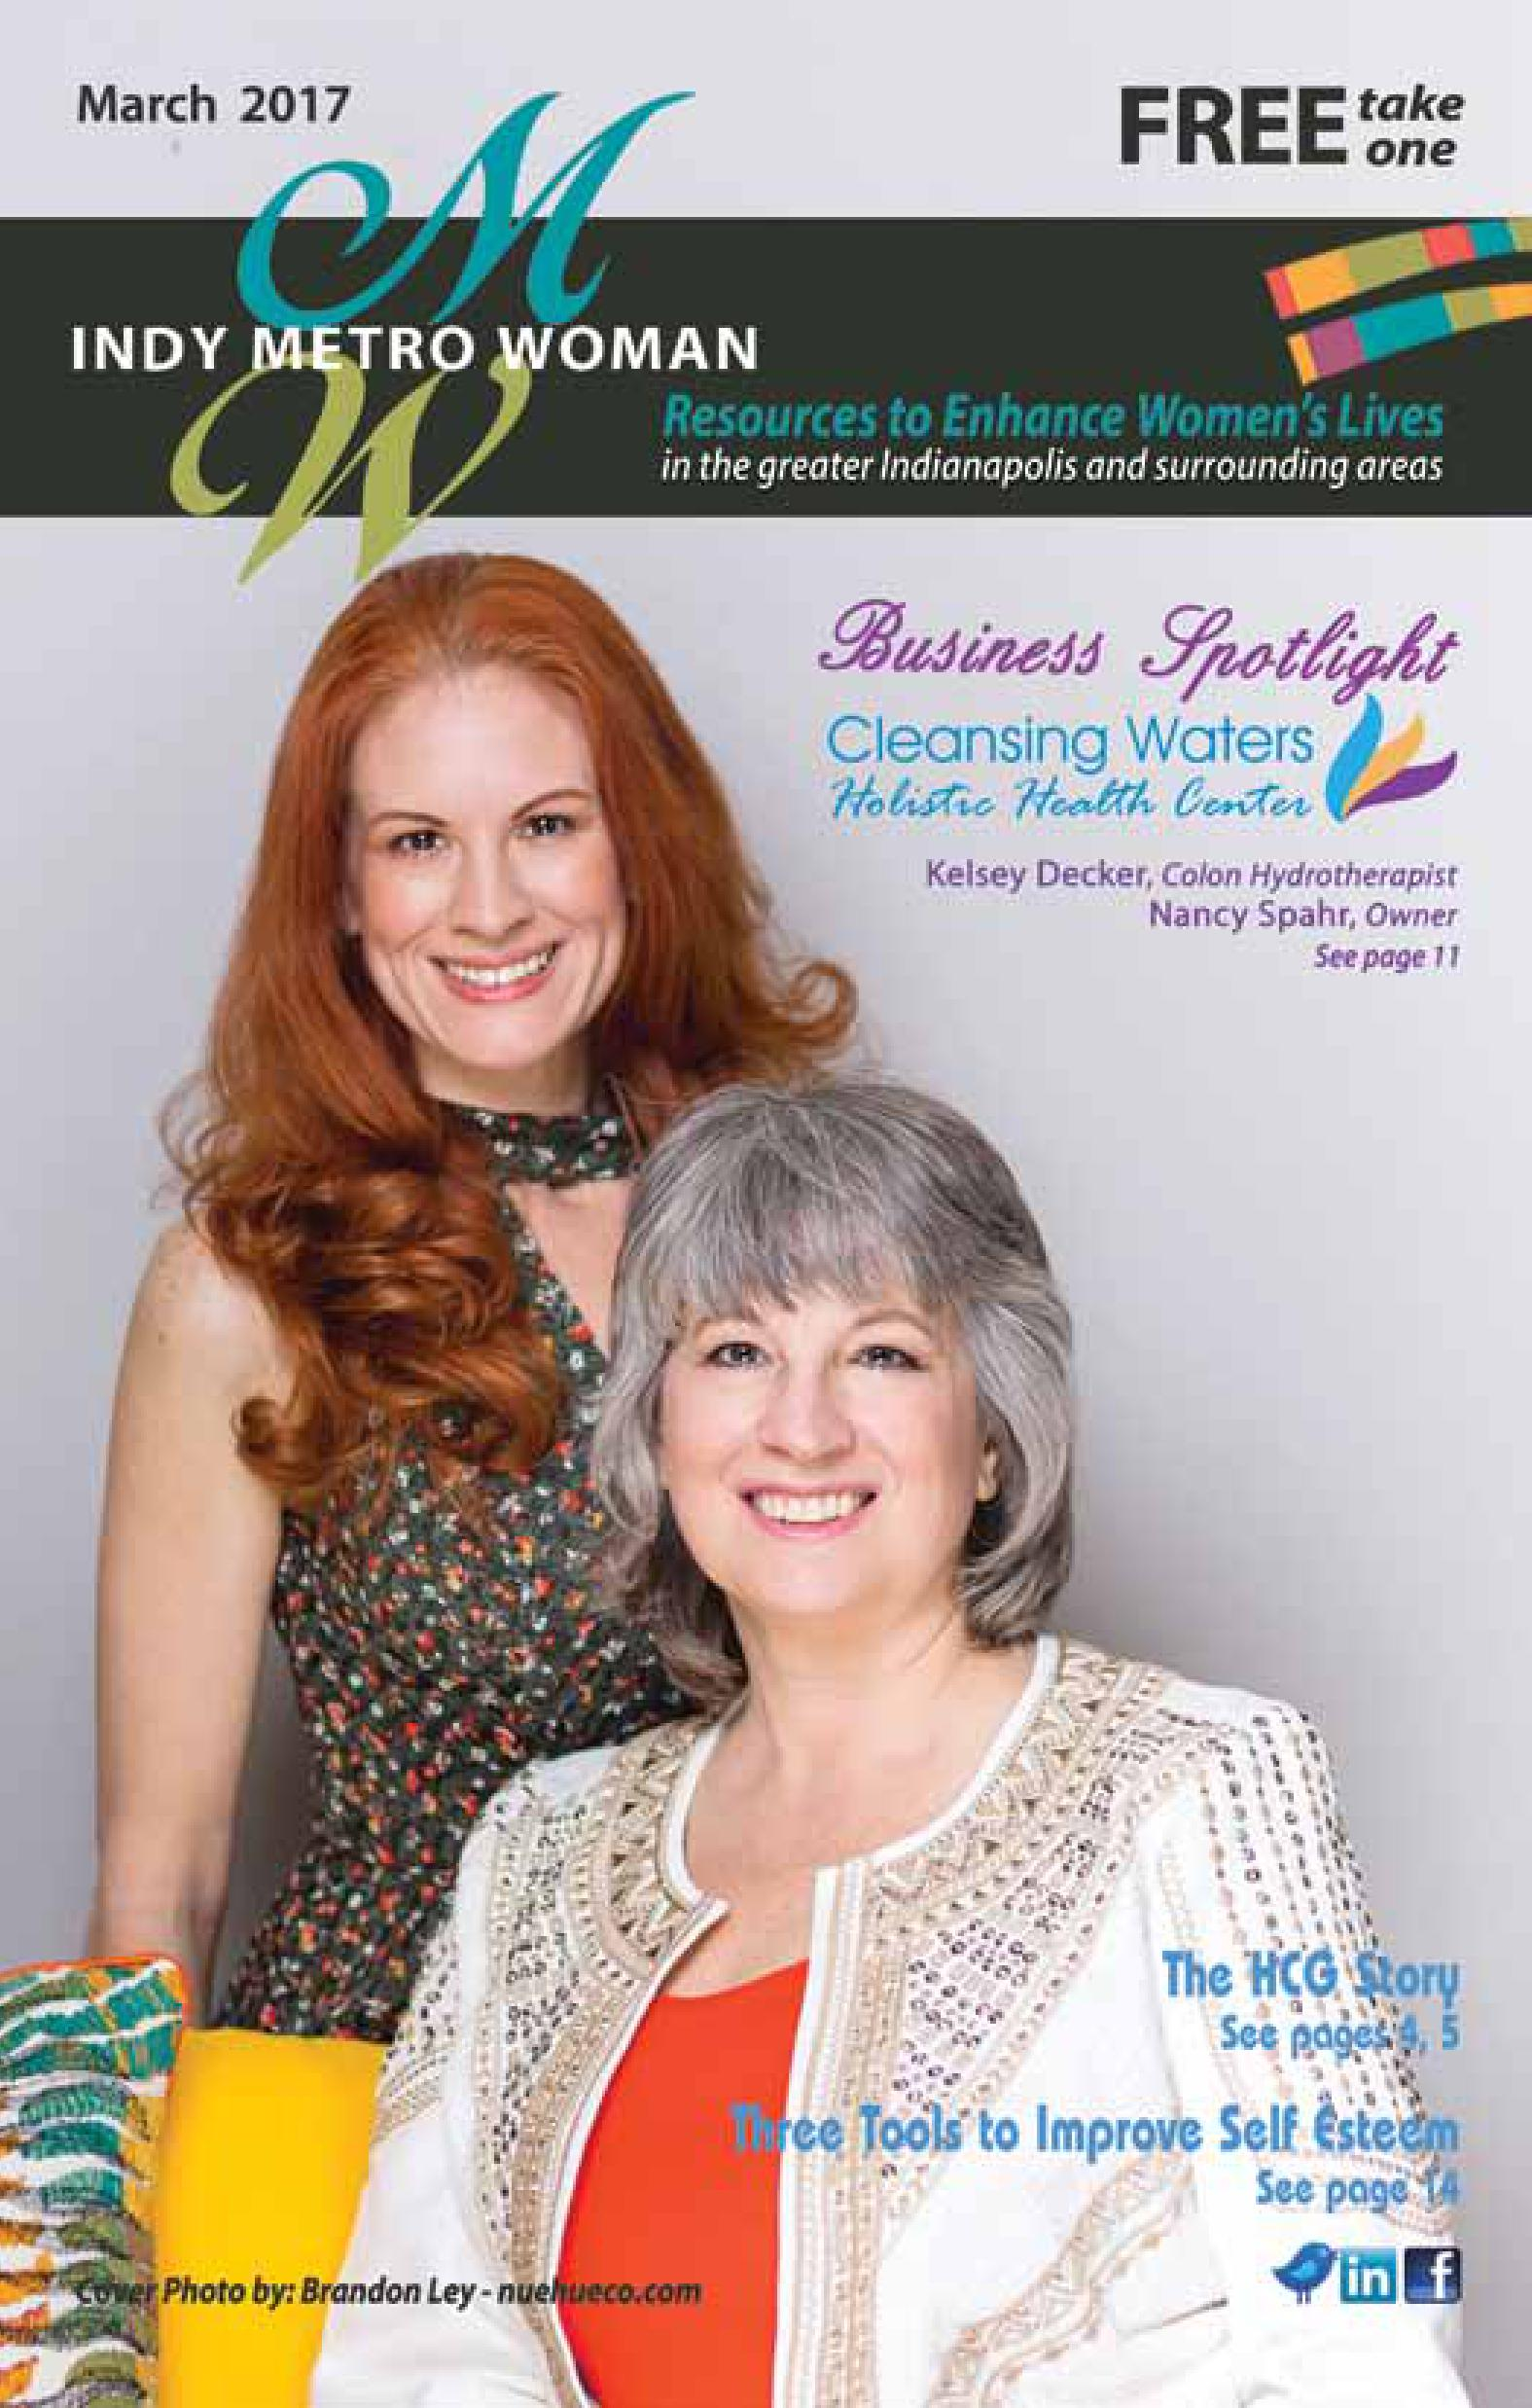 IMW March 2017 Cover.jpg